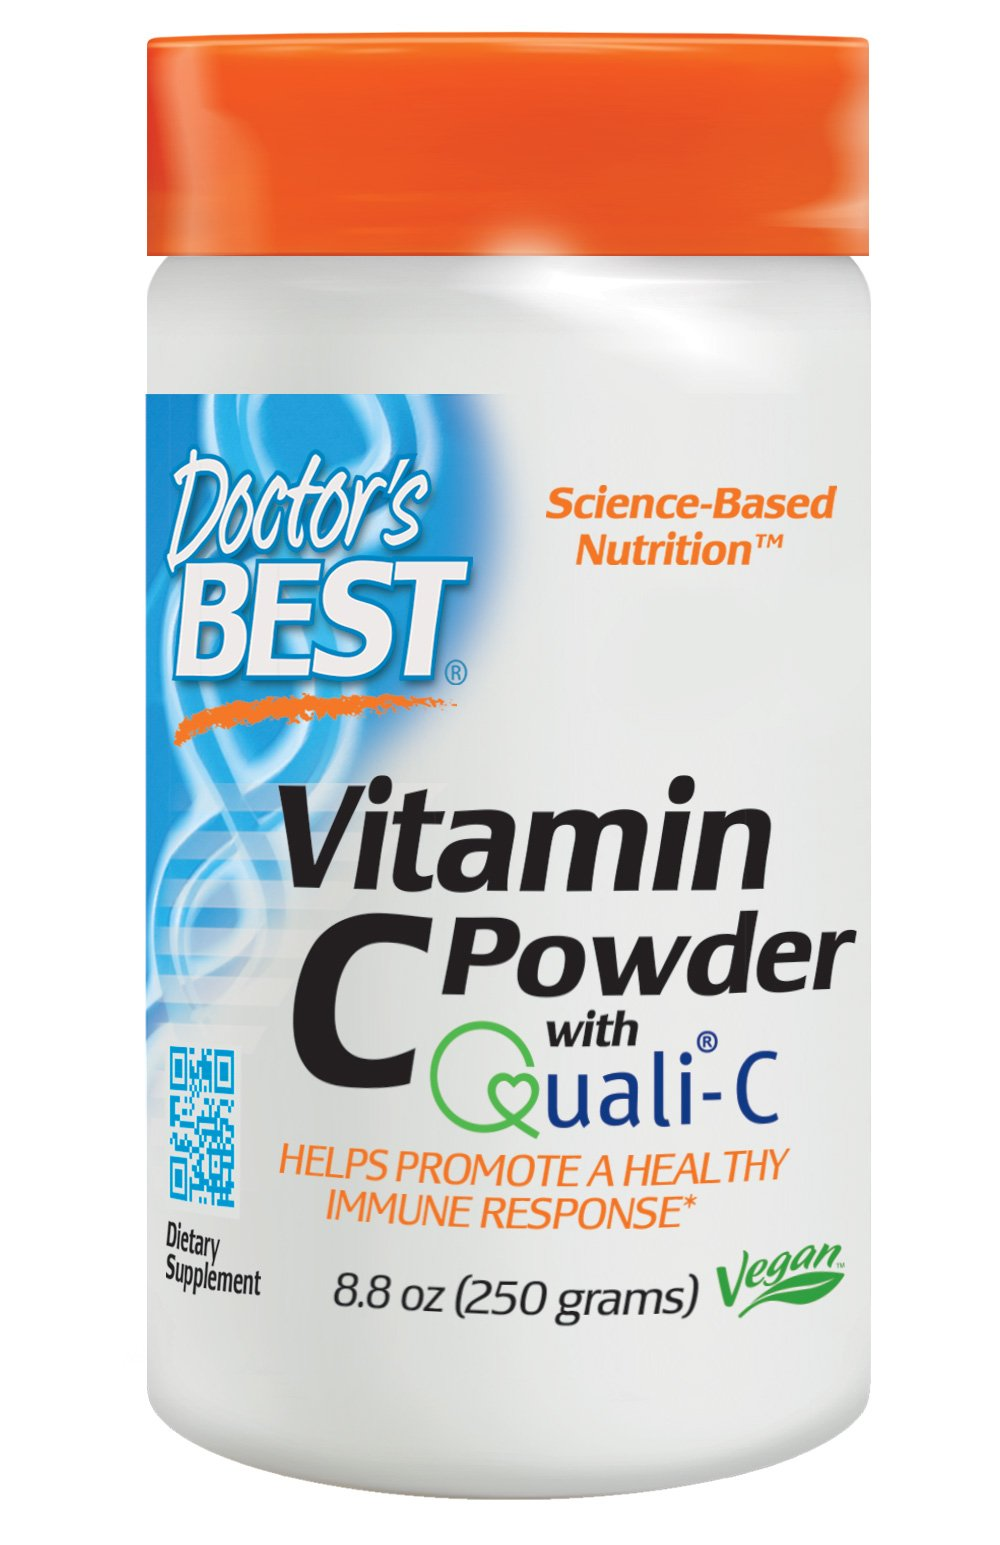 Doctor's Best Vitamin C with Quali-C, Non-GMO, Gluten Free, Vegan, Soy Free, Sourced From Scotland, 250 Grams